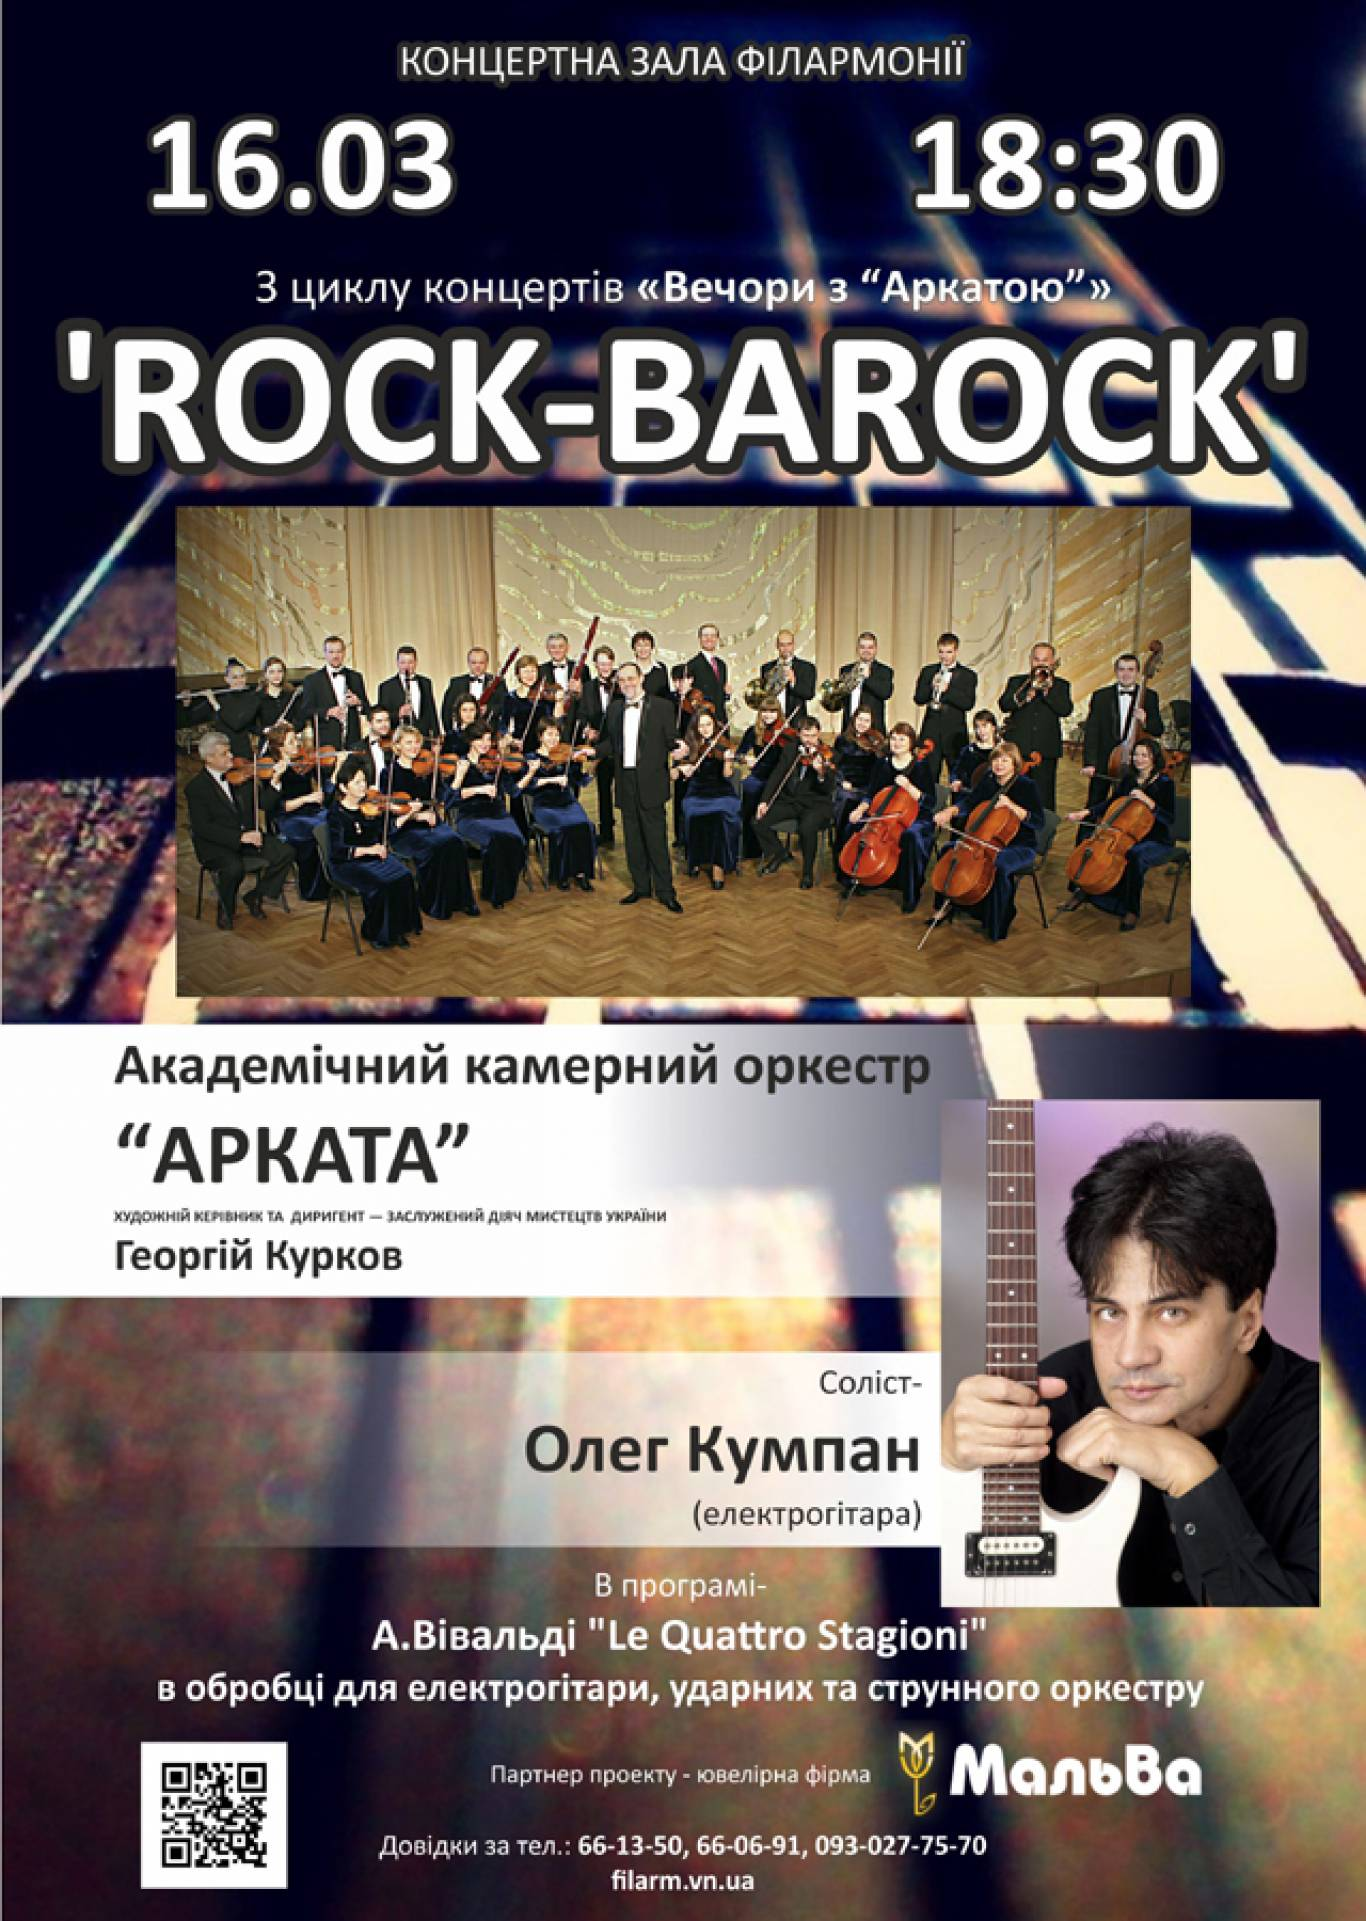 Олег Кумпан та й оркестр «Арката» з концертом 'Rock-barock'